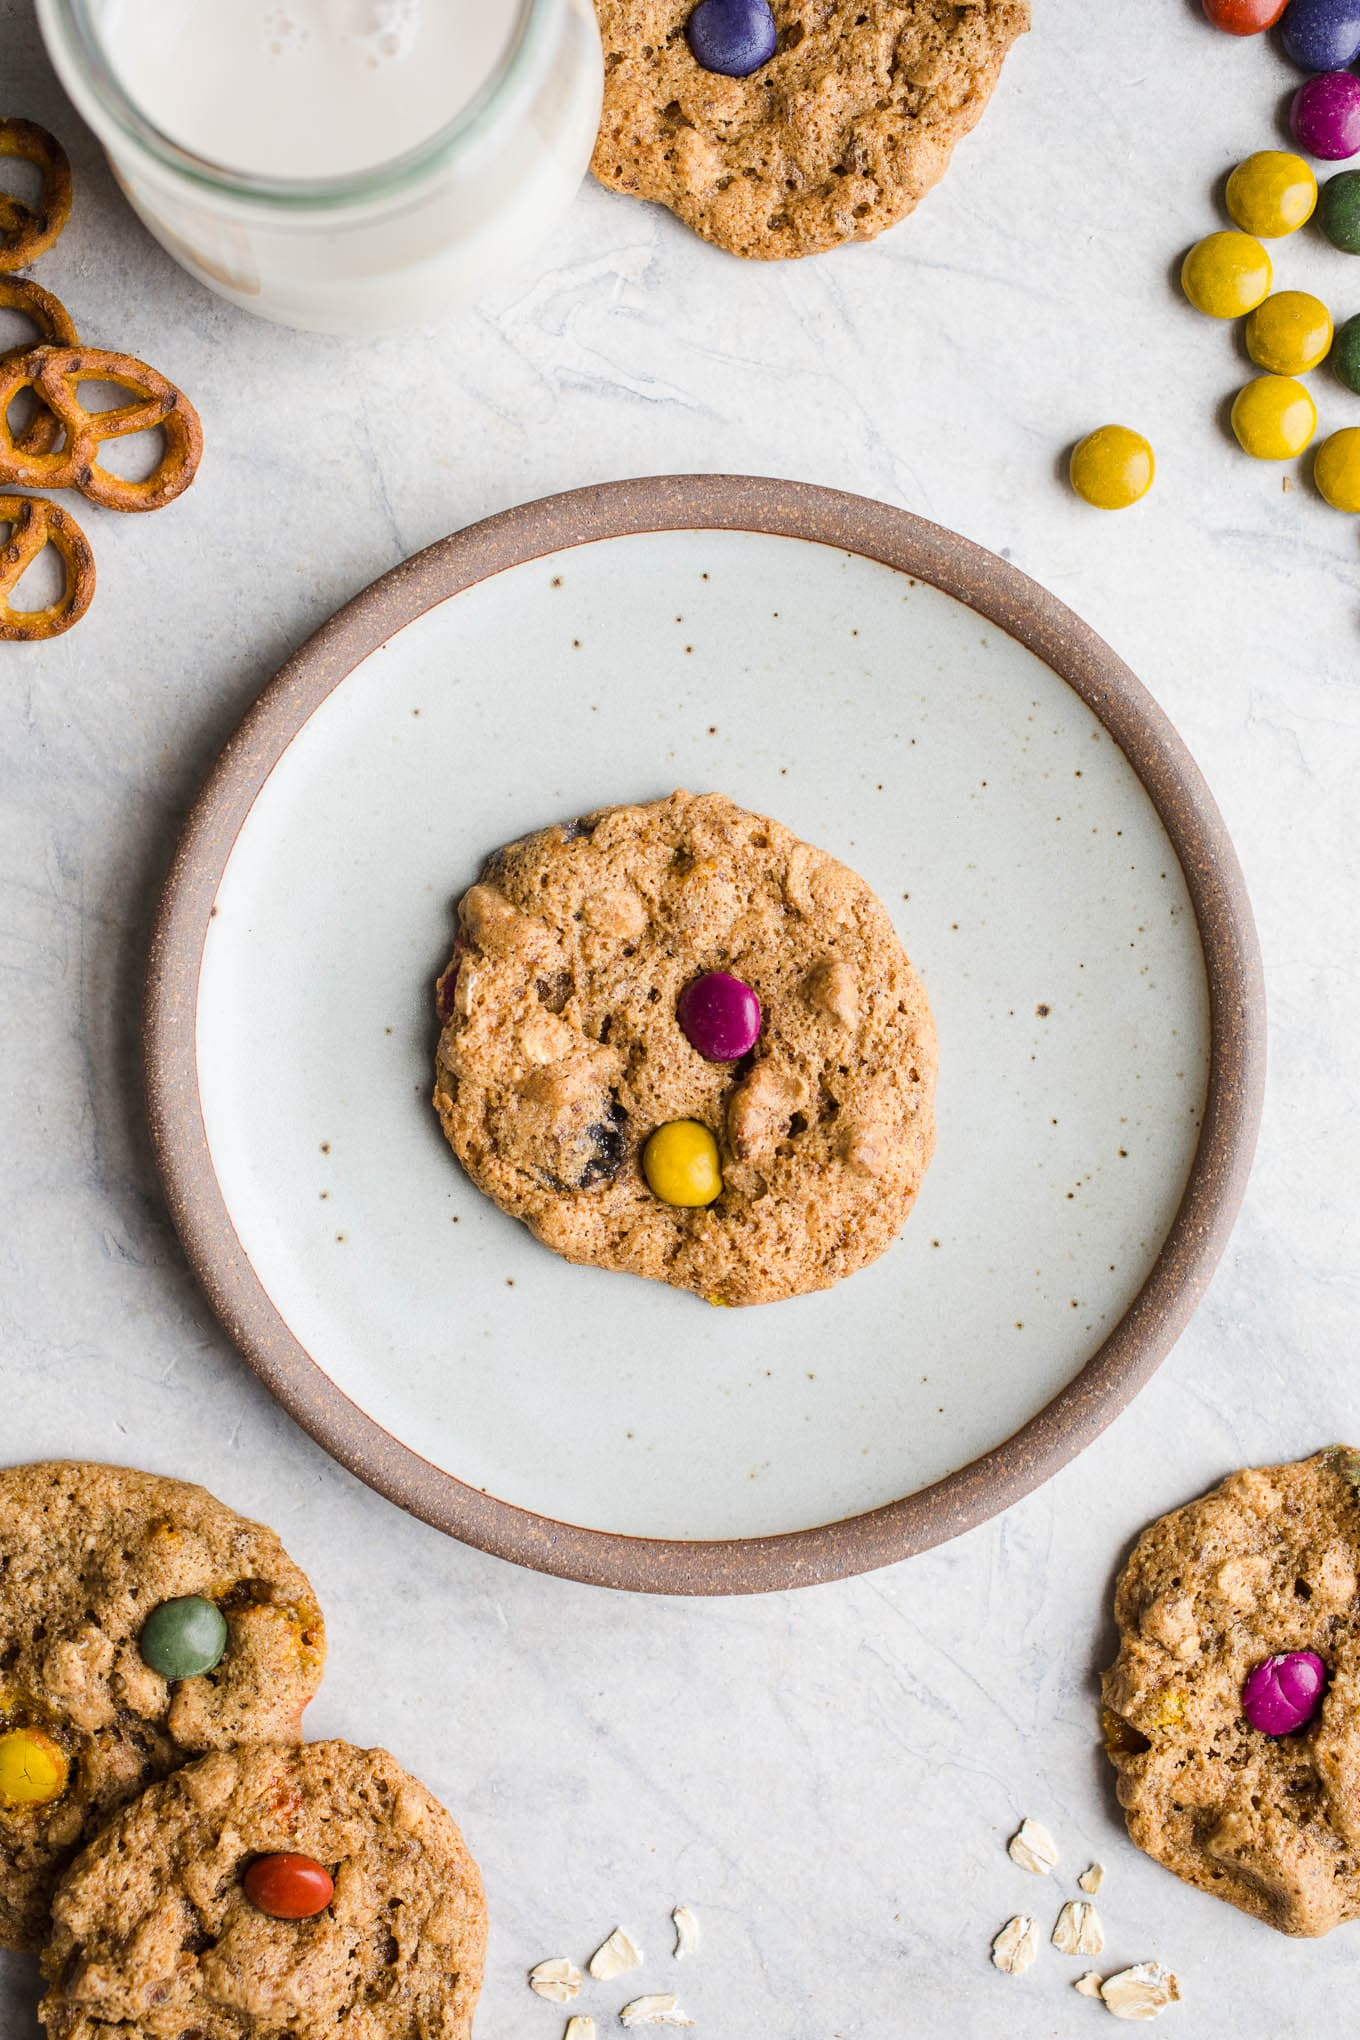 Almond Butter Monster Cookies made with gluten-free oats, pretzels, and chocolate pieces for a protein-packed gluten-free cookie. Vegan.